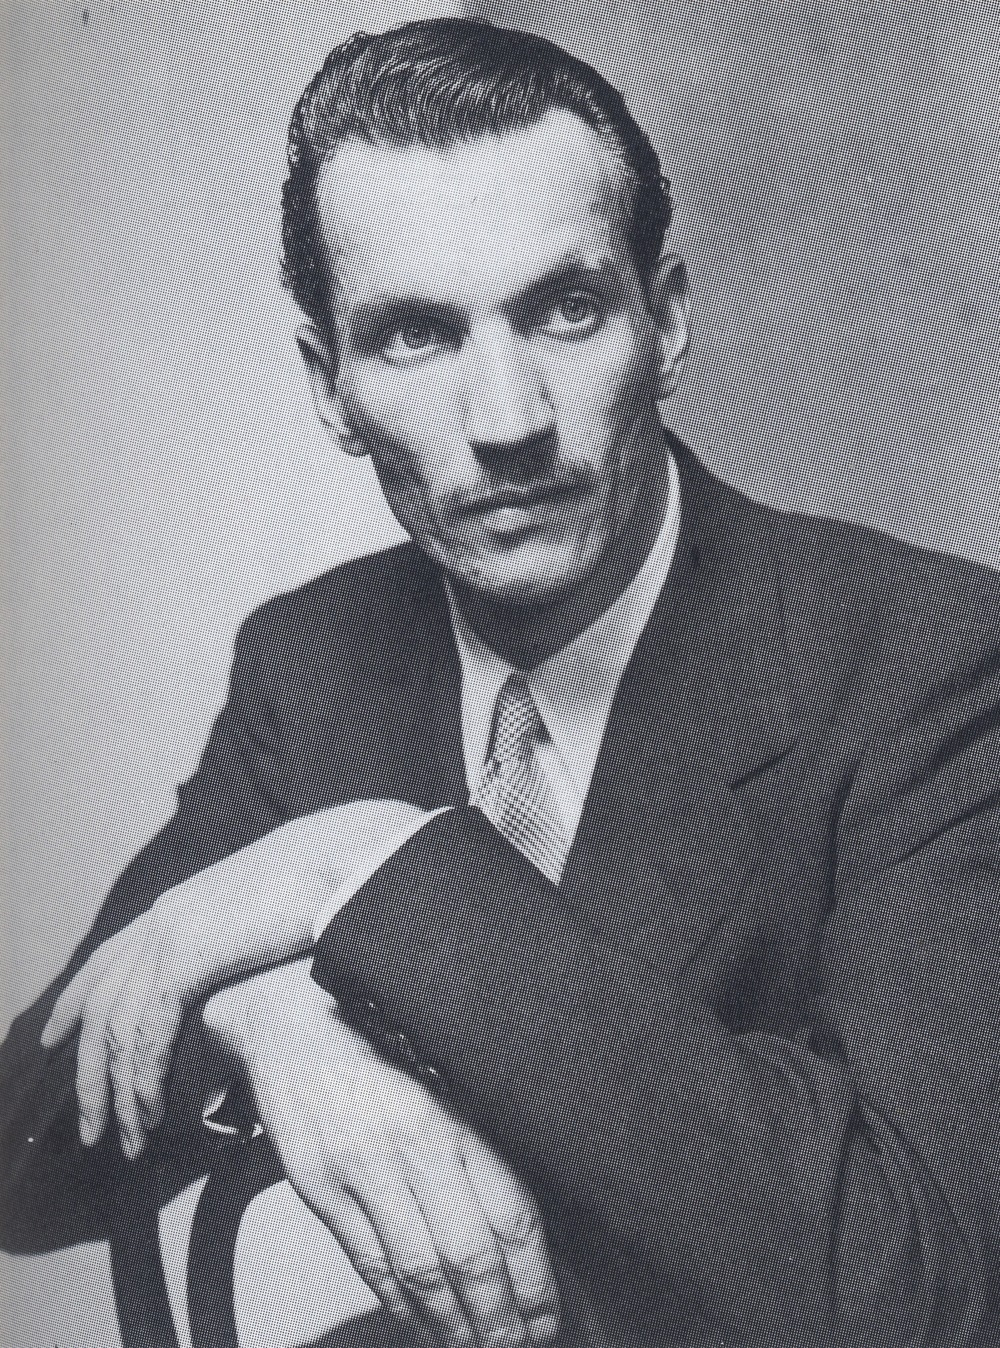 "Click photo to download. Caption: Jan Karski. Credit: Courtesy of The David S. Wyman Institute for Holocaust Studies.                 0     0     1     8     44     JNS     1     1     51     14.0                            Normal     0                     false     false     false         EN-US     JA     X-NONE                                                                                                                                                                                                                                                                                                                                                                                                                                                                                                                                                                                                                                                                                                                    /* Style Definitions */ table.MsoNormalTable 	{mso-style-name:""Table Normal""; 	mso-tstyle-rowband-size:0; 	mso-tstyle-colband-size:0; 	mso-style-noshow:yes; 	mso-style-priority:99; 	mso-style-parent:""""; 	mso-padding-alt:0in 5.4pt 0in 5.4pt; 	mso-para-margin:0in; 	mso-para-margin-bottom:.0001pt; 	mso-pagination:widow-orphan; 	font-size:12.0pt; 	font-family:Cambria; 	mso-ascii-font-family:Cambria; 	mso-ascii-theme-font:minor-latin; 	mso-hansi-font-family:Cambria; 	mso-hansi-theme-font:minor-latin;}"